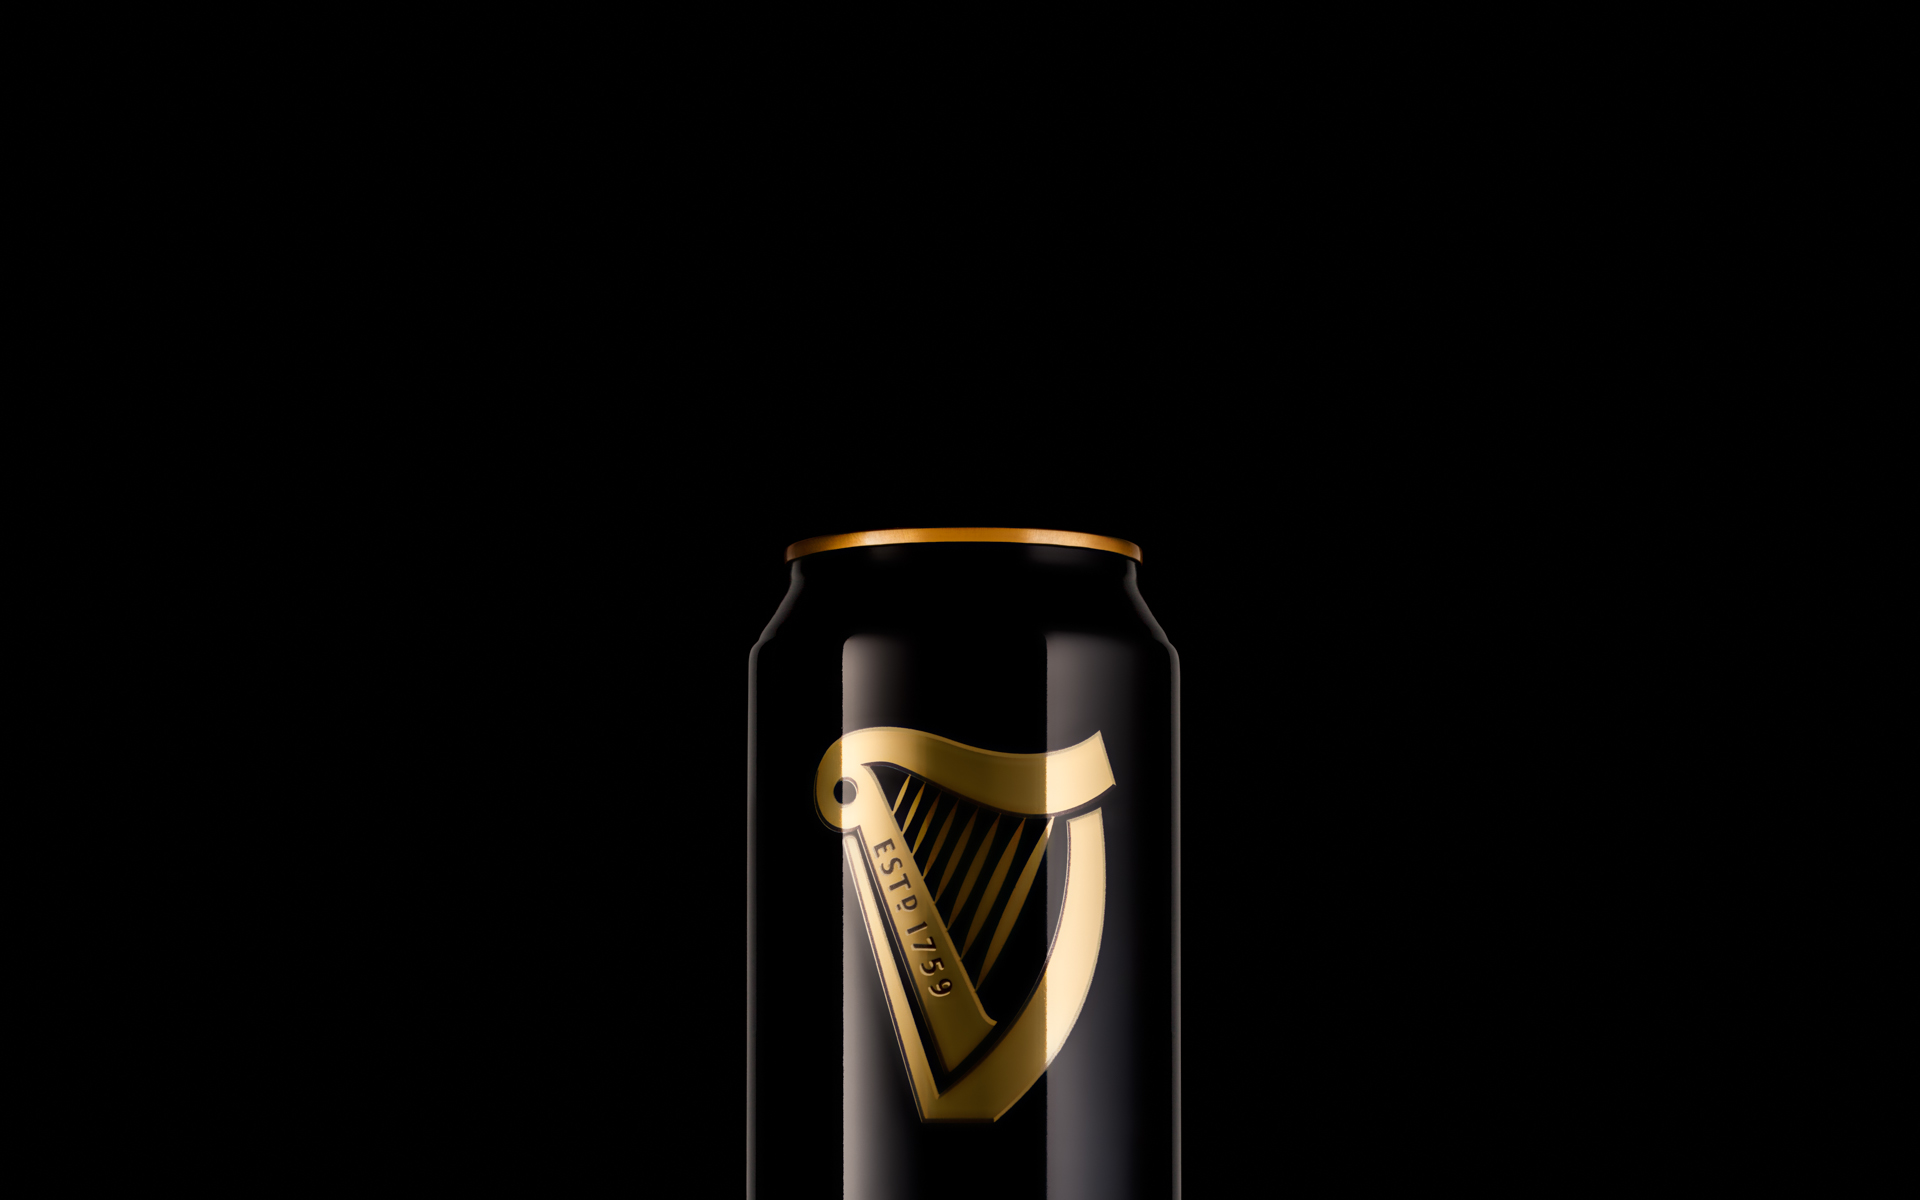 Guinness-088-Edit